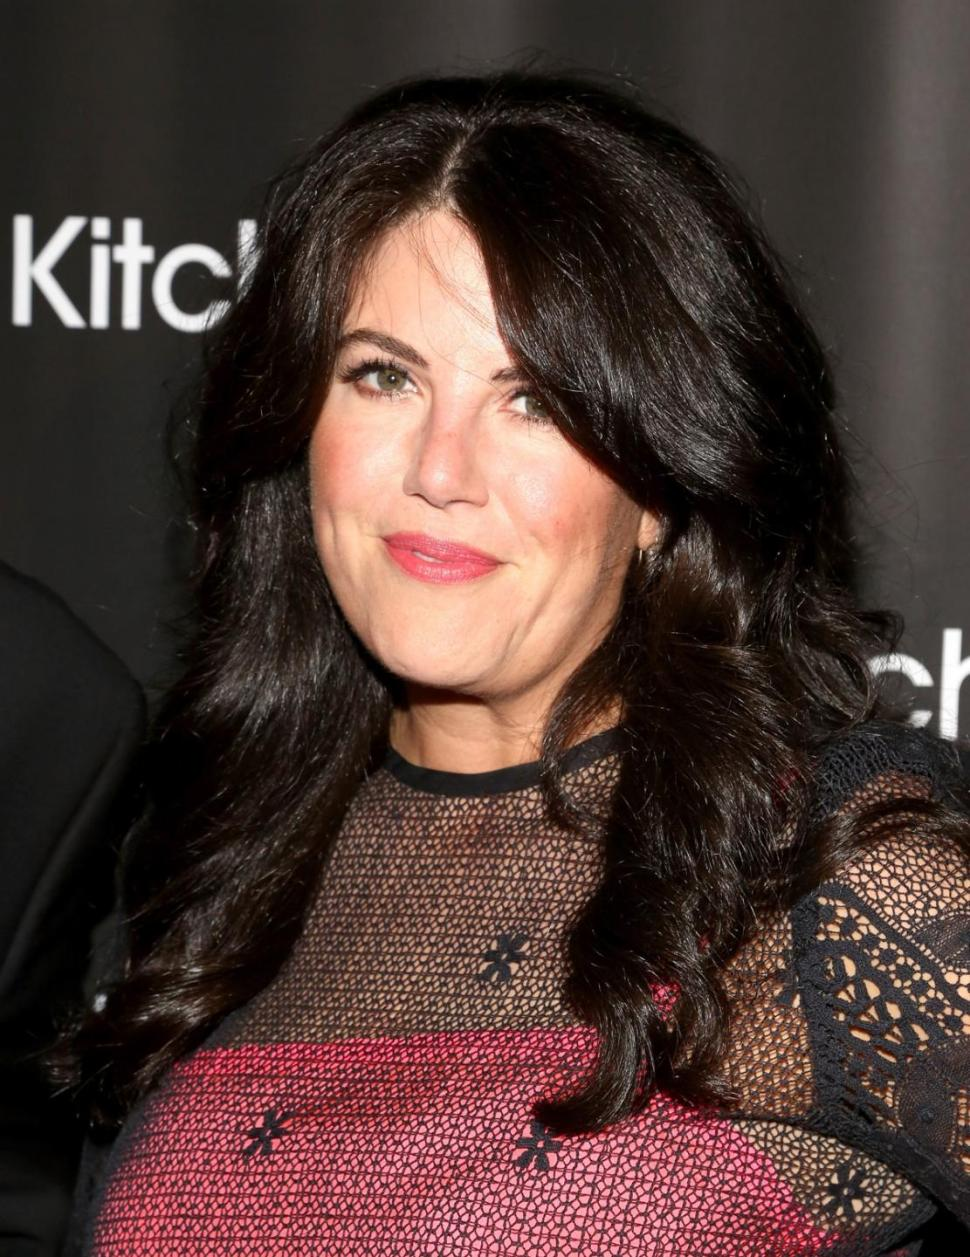 monica-lewinsky-kitchen-spring-gala-benefit-cipriani-wall-street-1